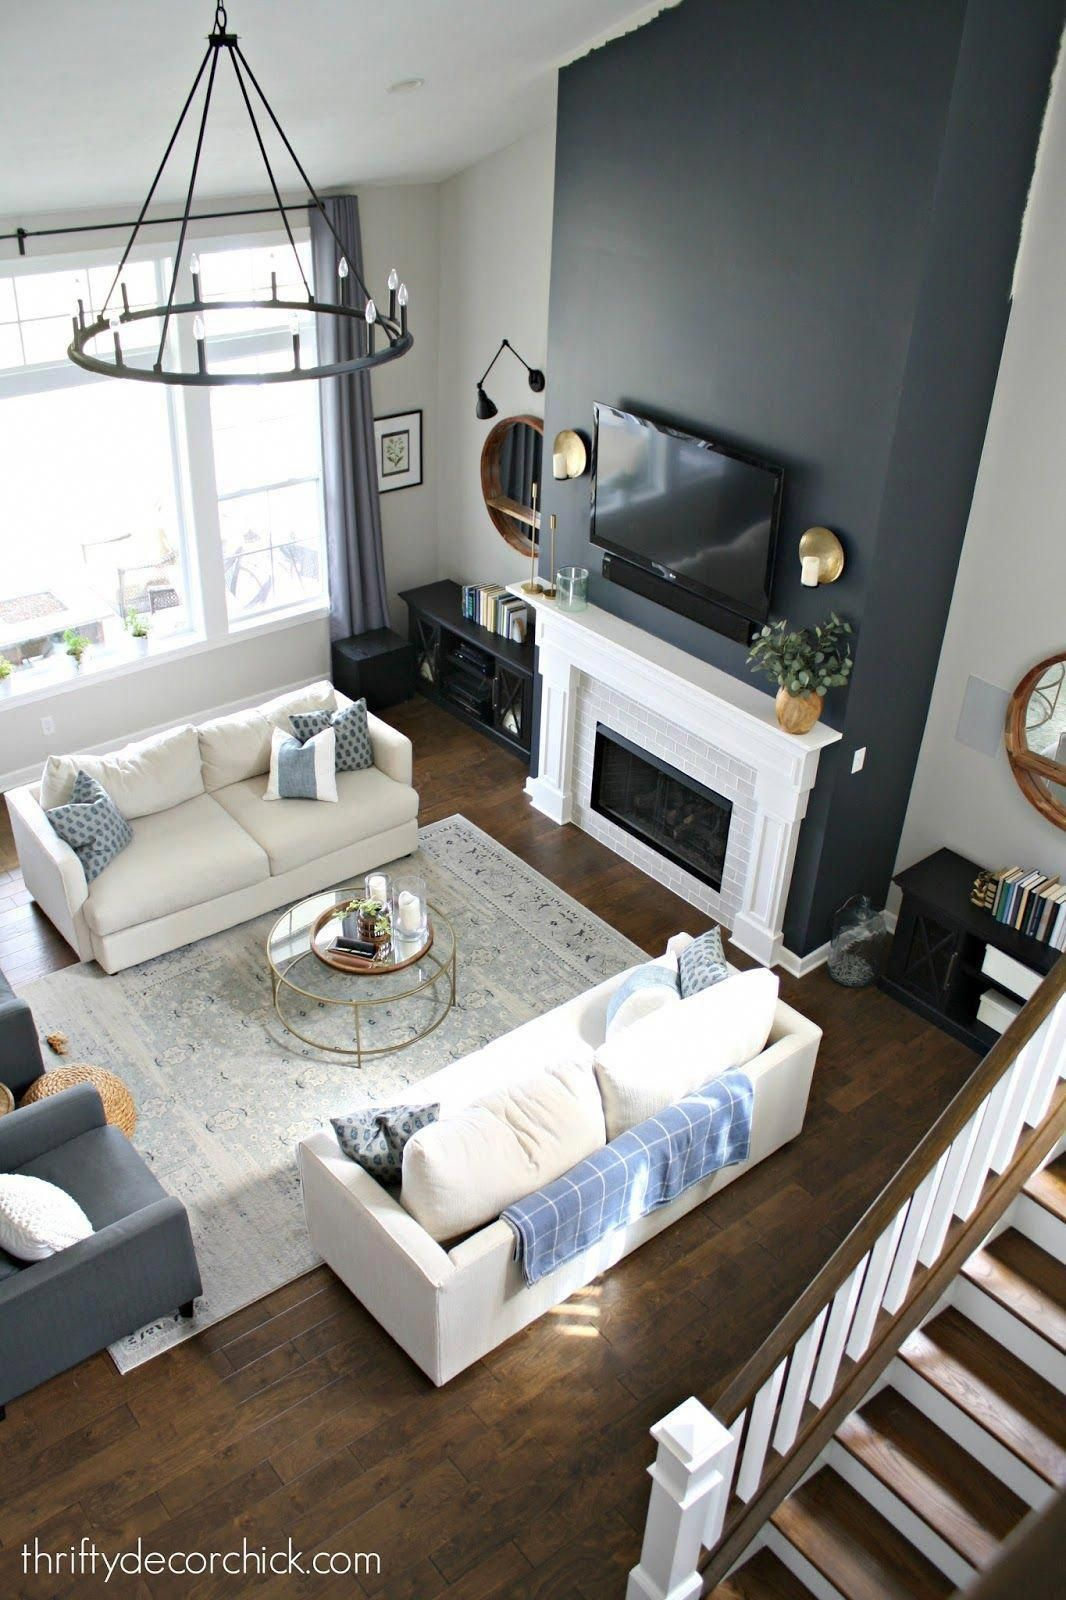 8 Essential For An Oriental Inspired Decor With Images Grey